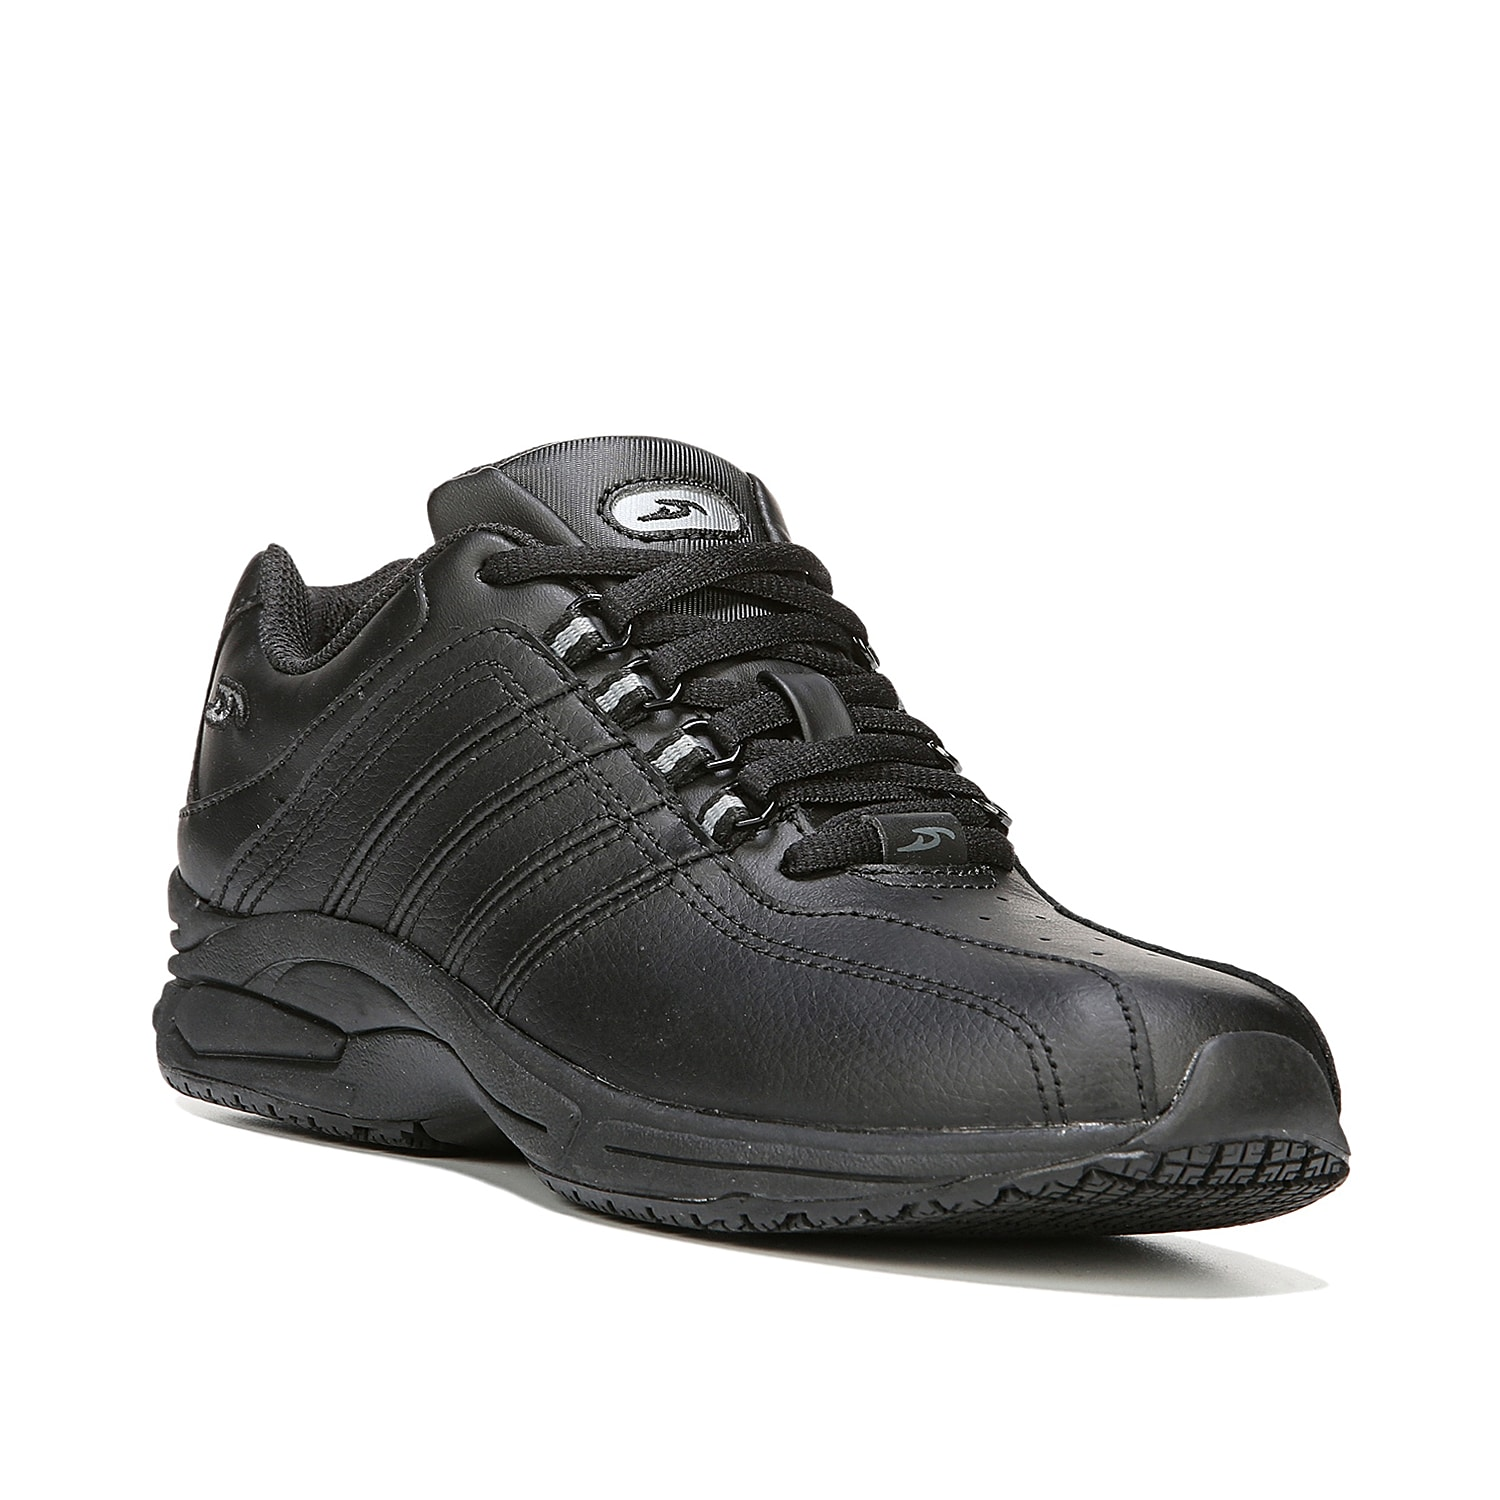 Get a work shoe that keeps you comfy and safe! The Kimberly sneaker from Dr. Scholl\\\'s is enhanced with a memory foam footbed and slip-resistant safety sole.